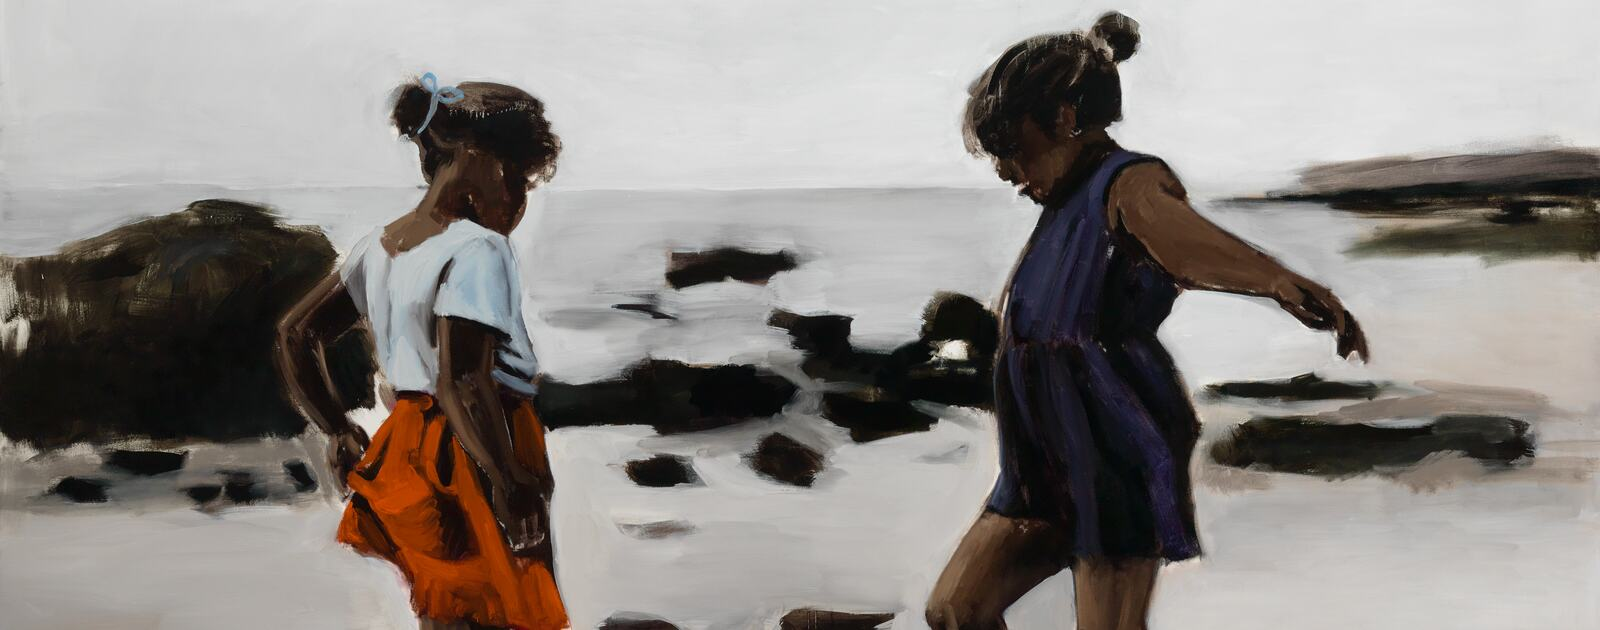 Lynette Yiadom-Boakye Condor and The Mole, 2011 Oil on canvas Arts Council Collection, Southbank Centre, London  © the artist.